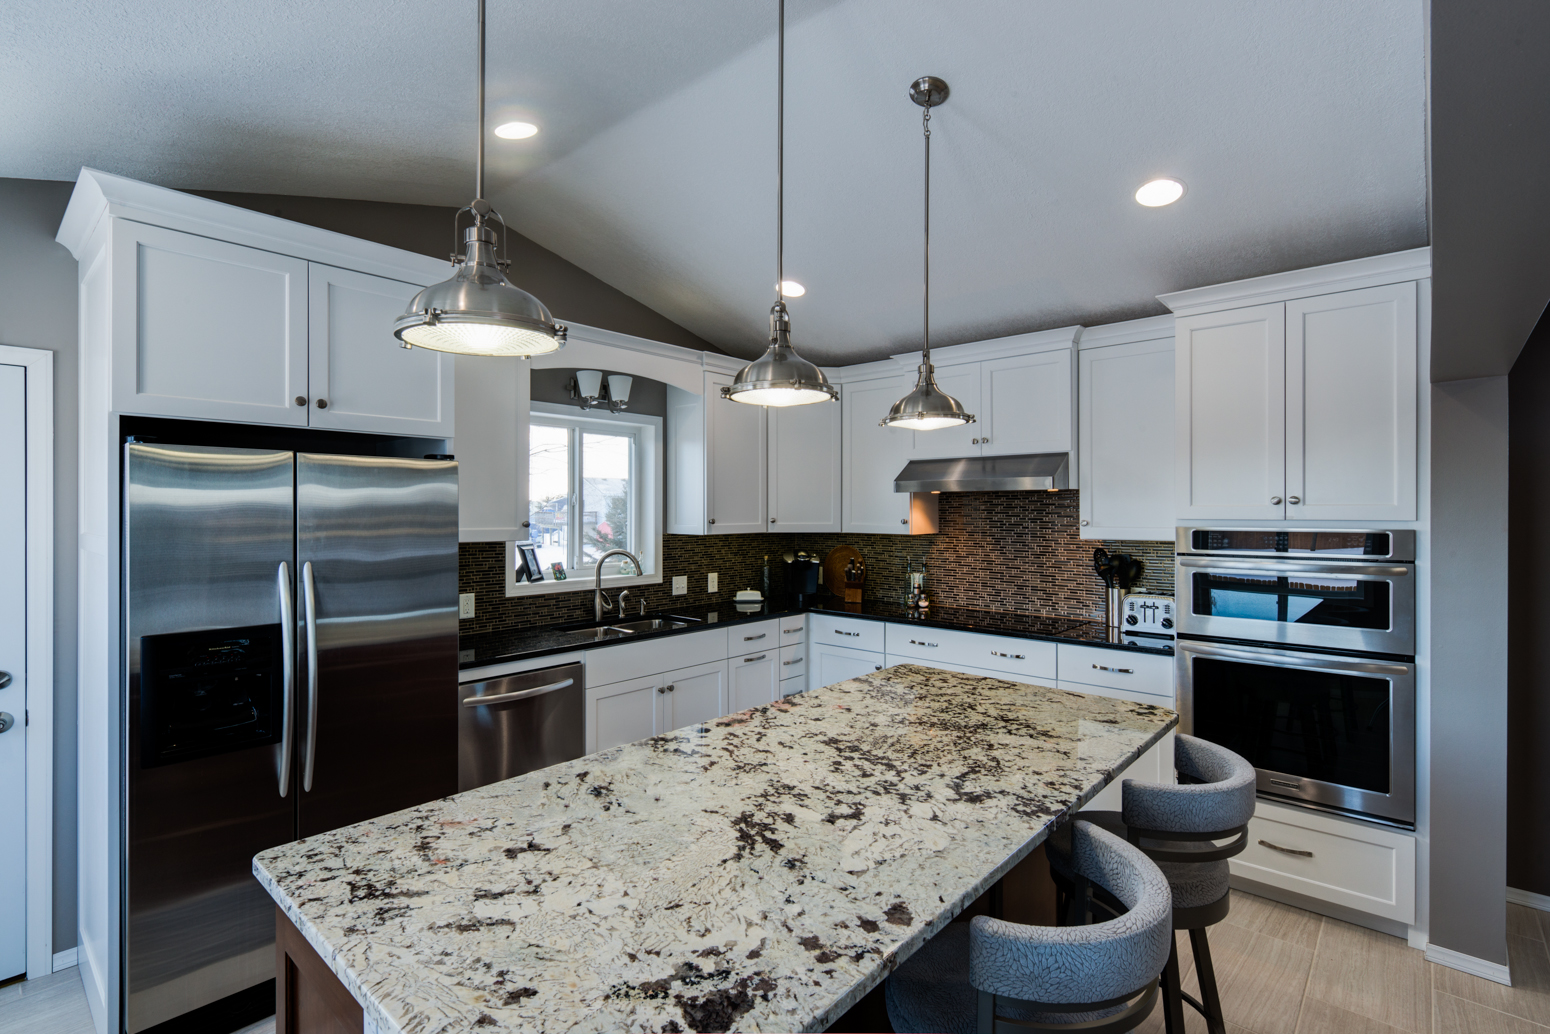 Kitchen Remodeling Dovetail Kitchen Designs » Todd Myra Photography - Central